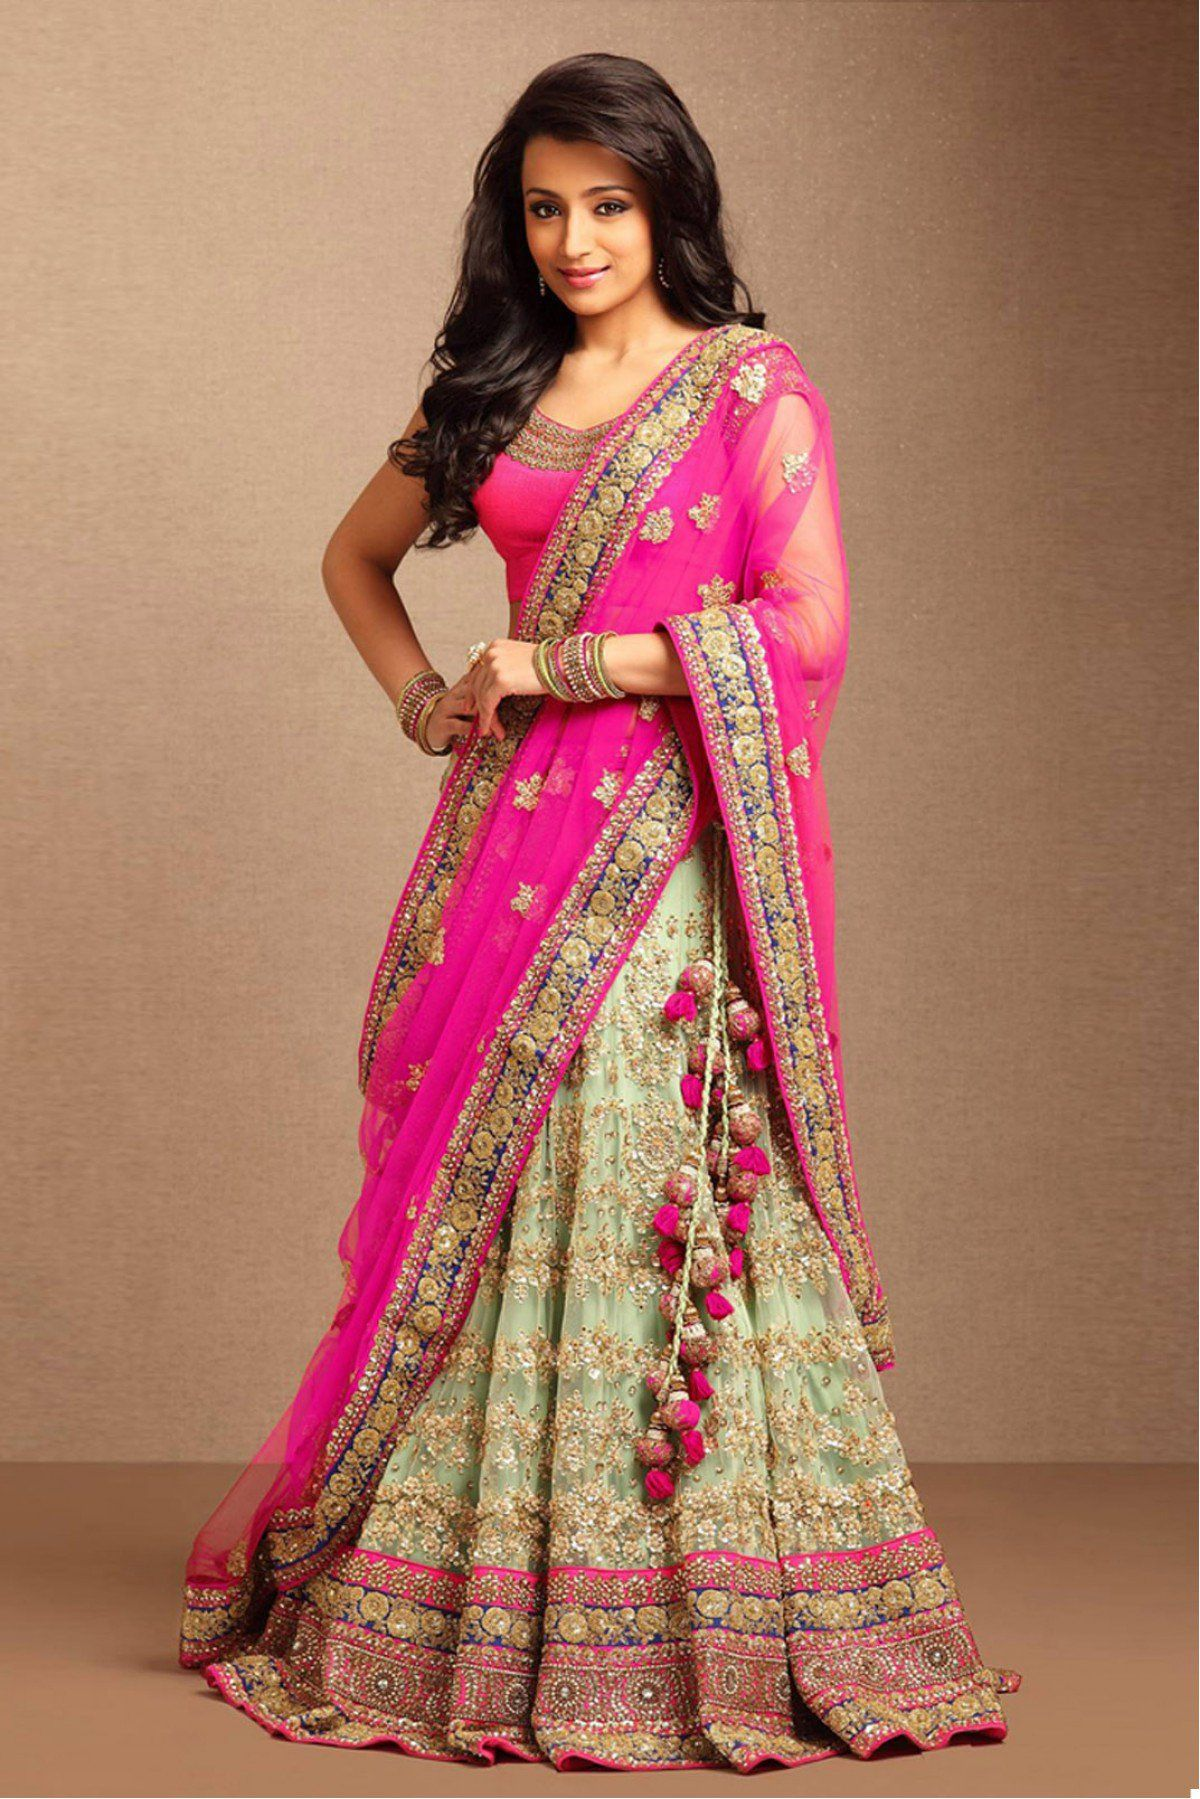 f856791322 Pink And Beige Colour Nylon Net Fabric Party Wear Lehenga Choli Comes with  matching blouse. This Lehenga Choli Is crafted with Embroidery,Lace Work  This ...